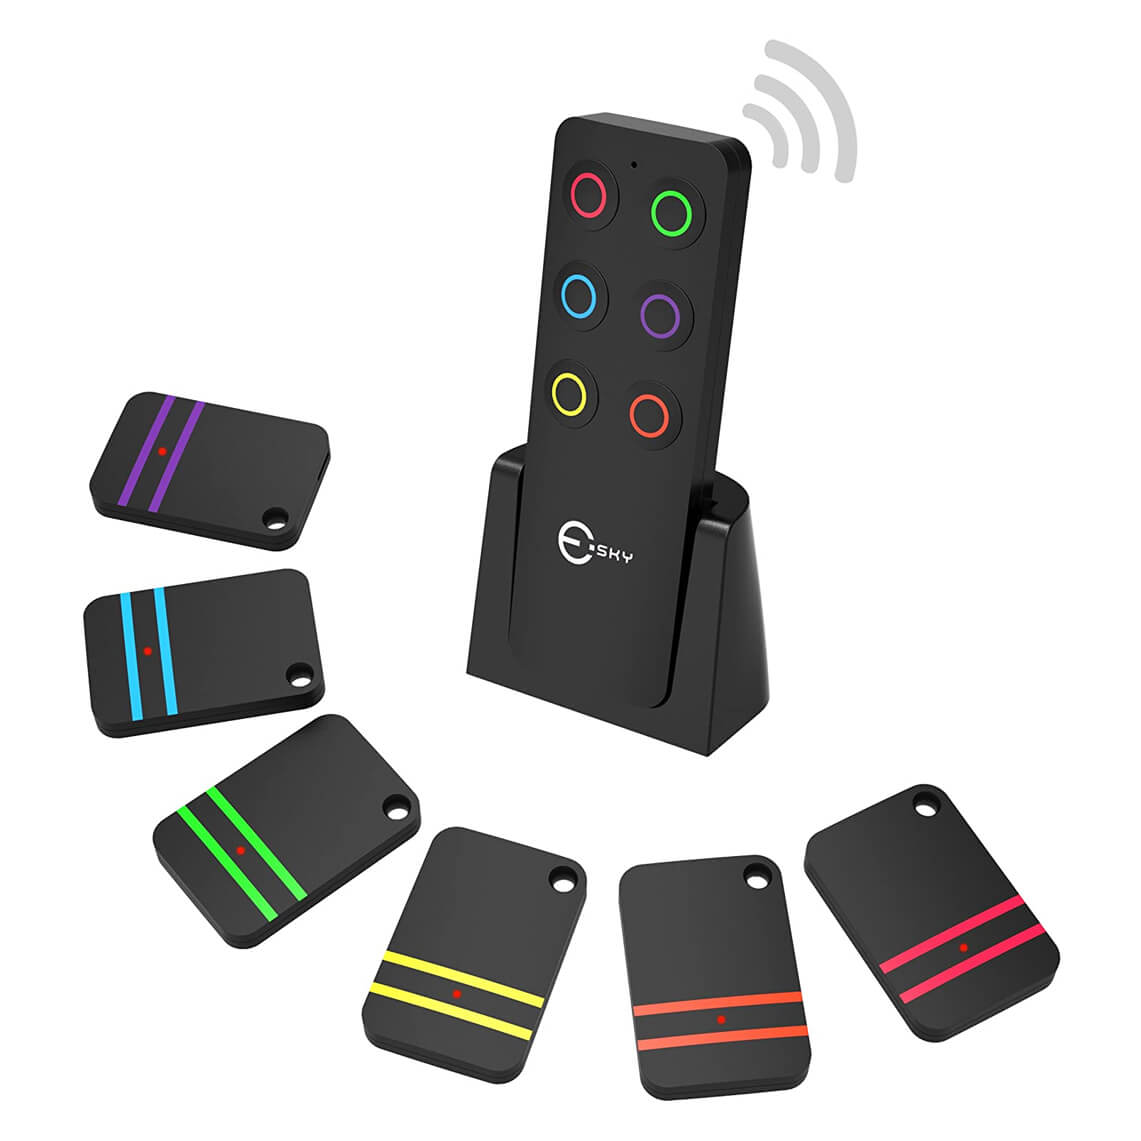 Esky Key Finder - 6 receivers